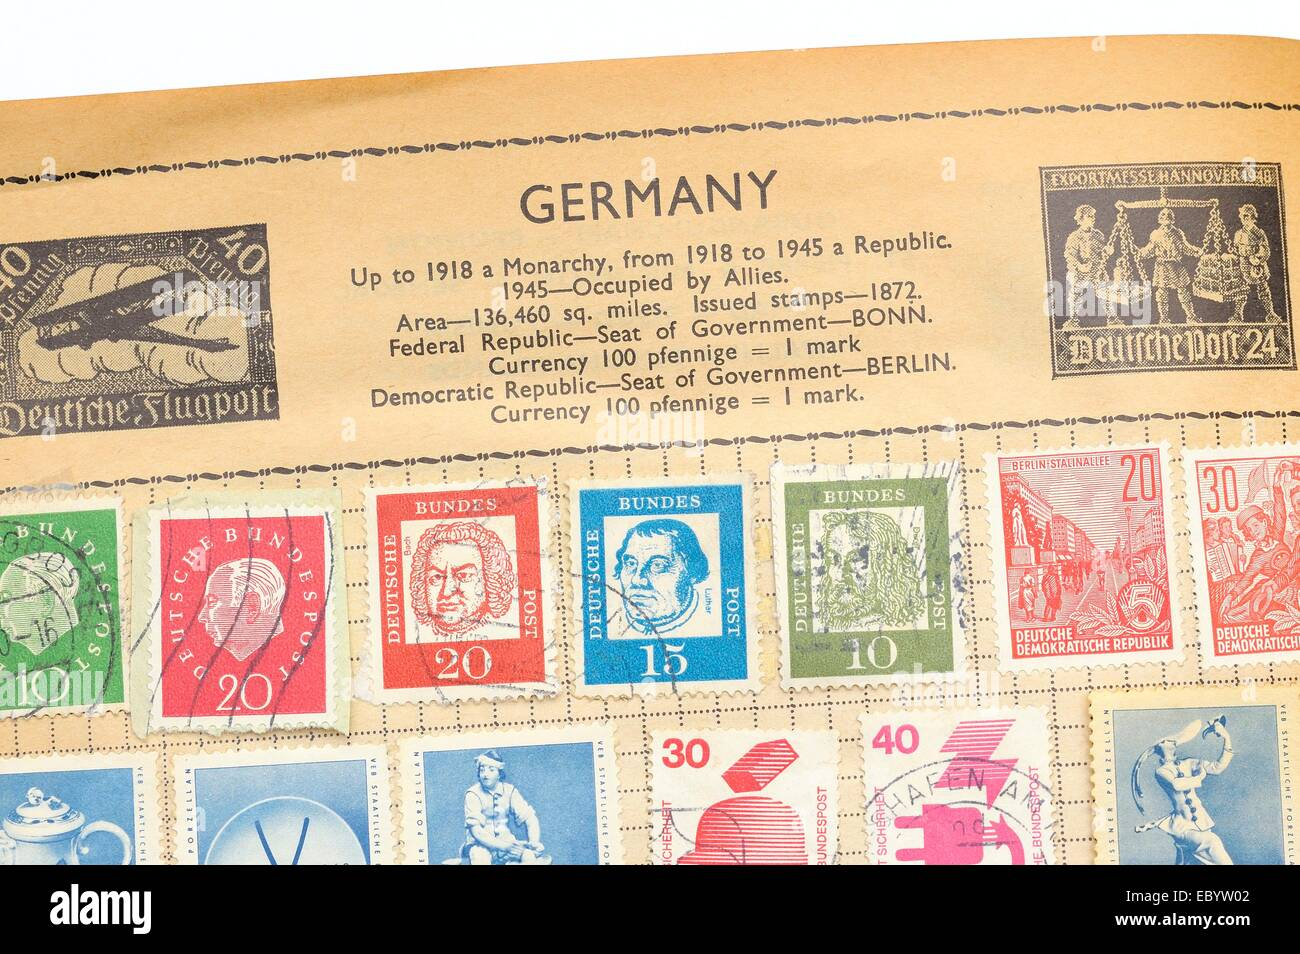 An old fully illustrated stamp album with stamps from Germany Stock Photo